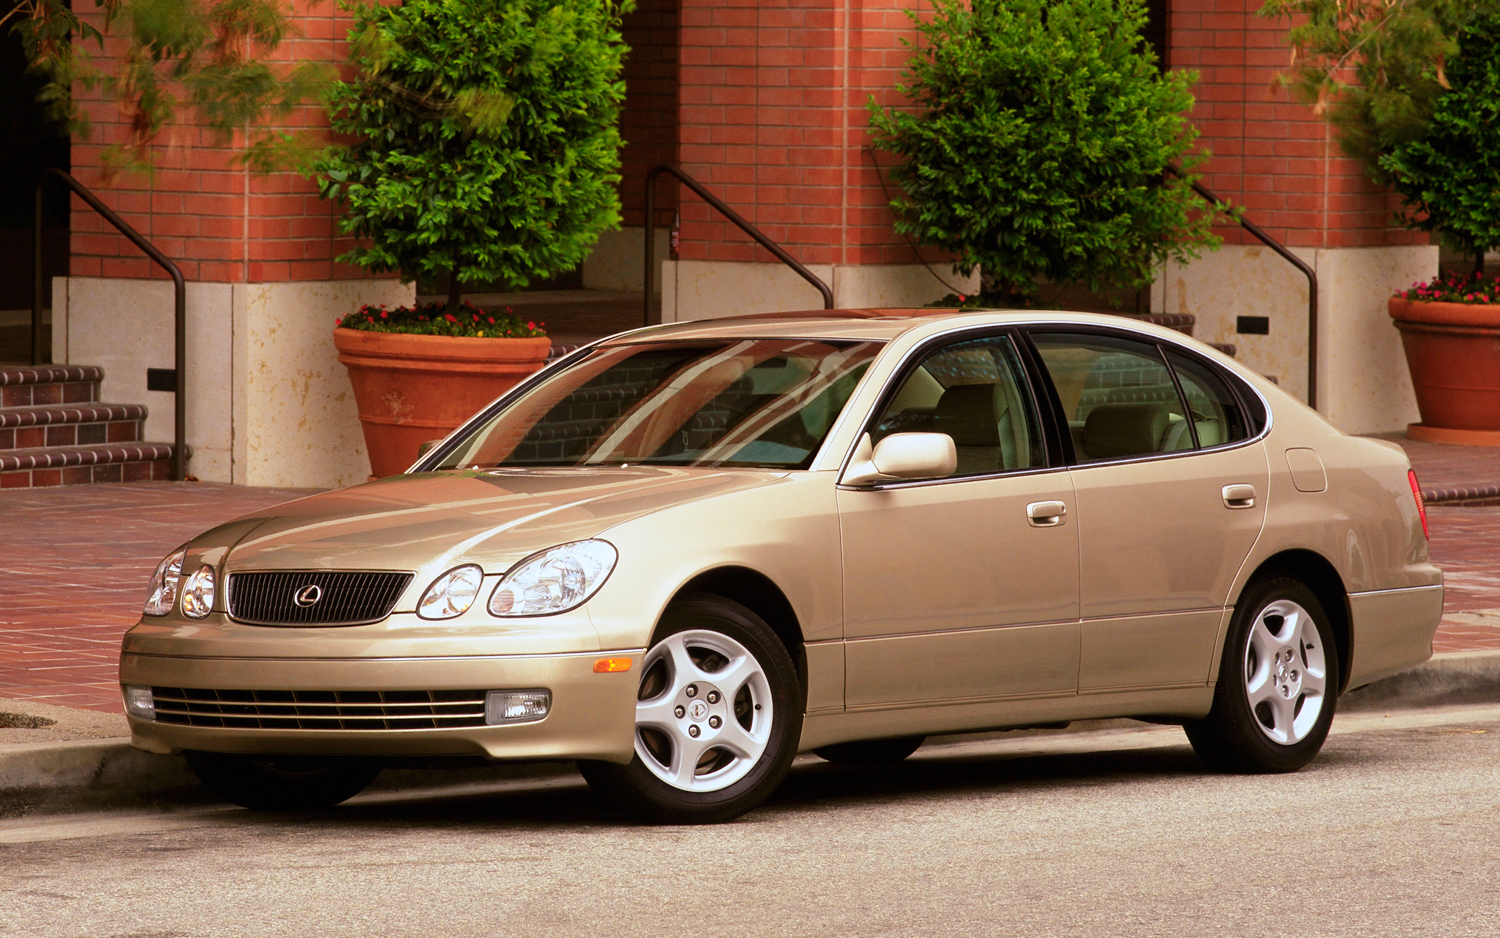 lexus gs 350 1998 technical specifications interior and exterior photo. Black Bedroom Furniture Sets. Home Design Ideas